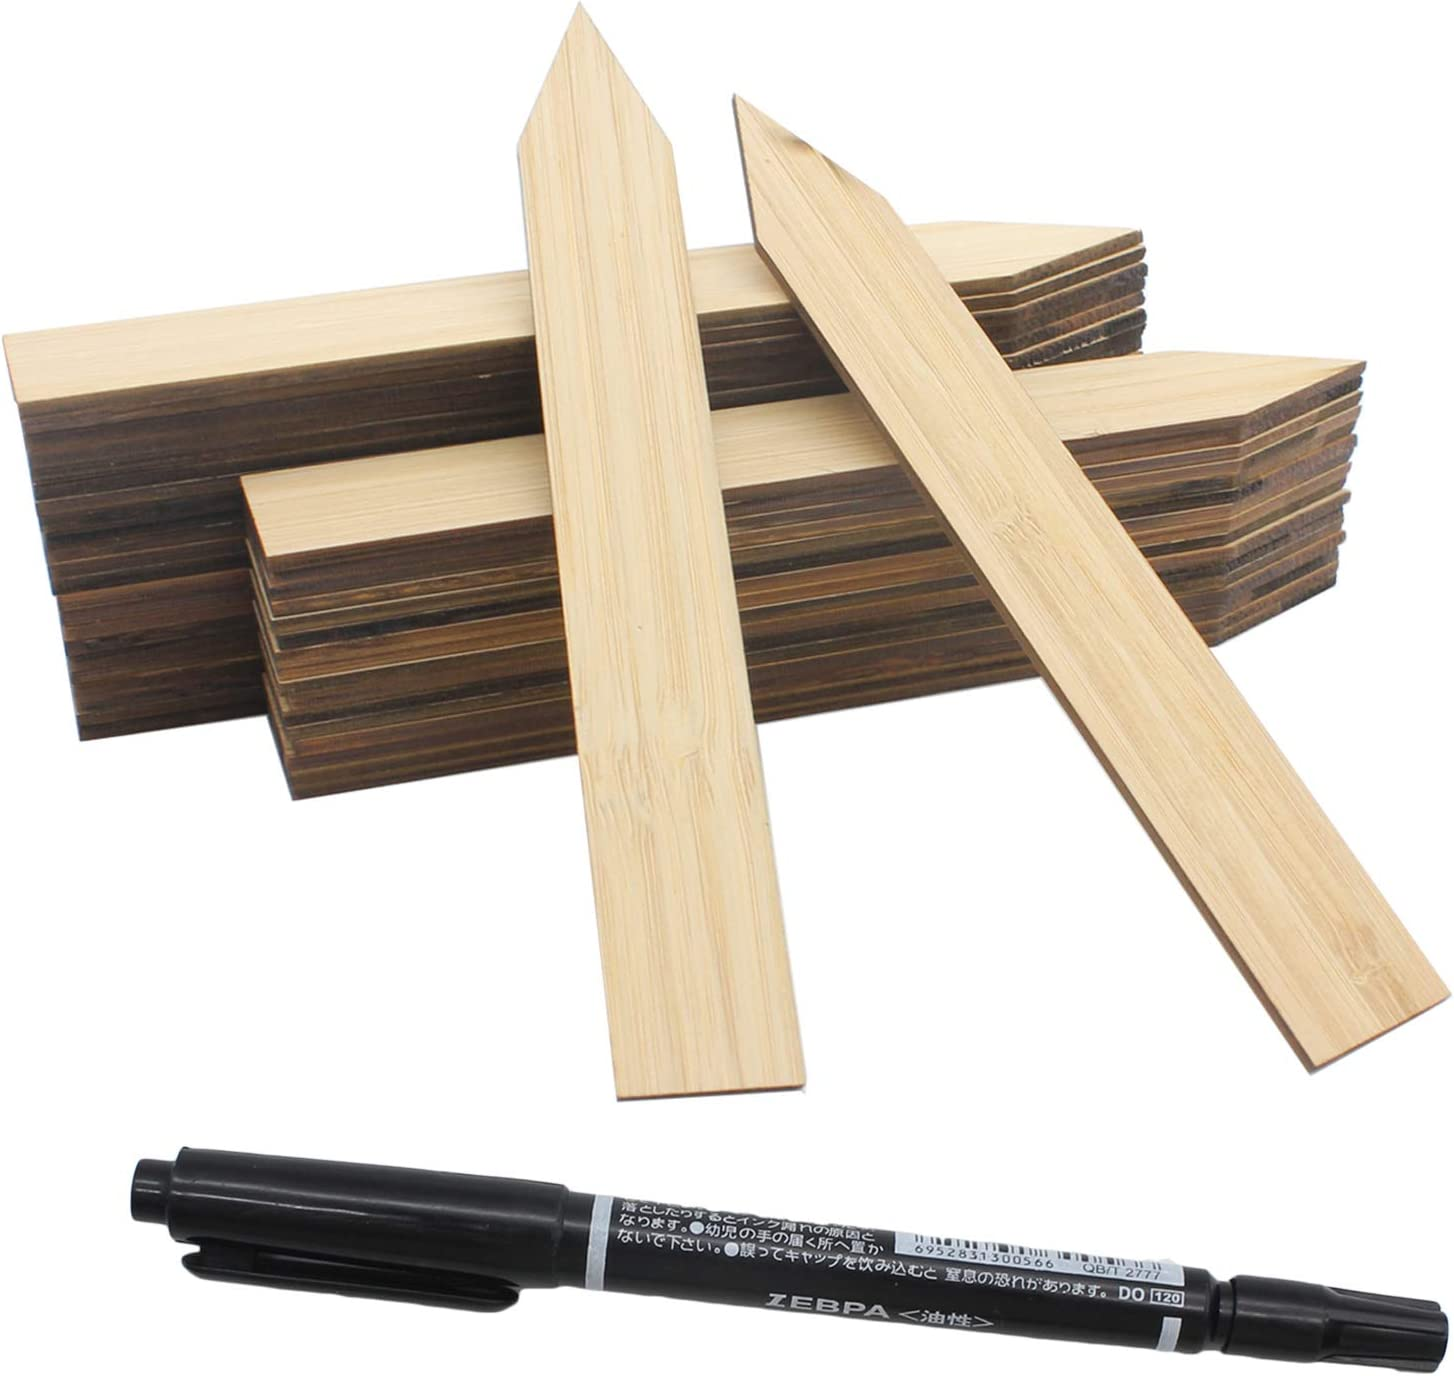 Max 58% OFF Mziart 50Pcs Bamboo Plant Labels with Waterproof Inexpensive A Marker Pen P